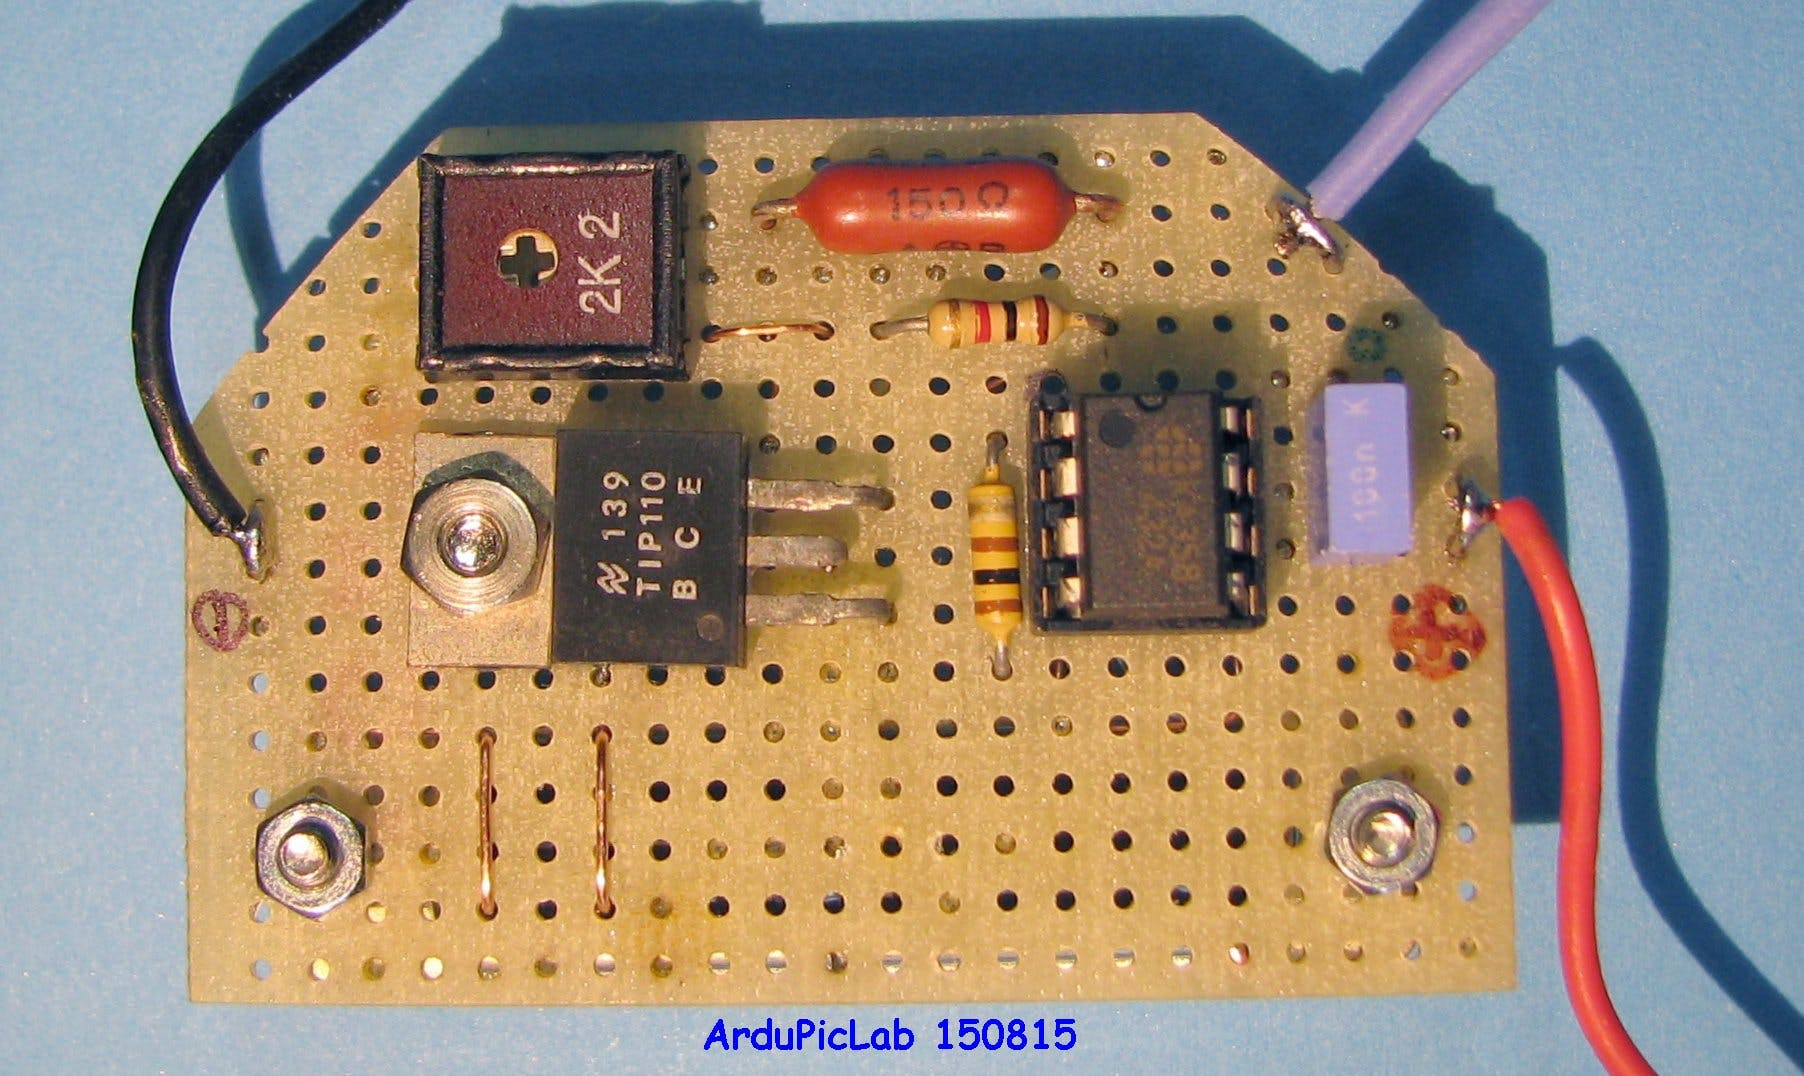 4-20 mA current output for Arduino Due